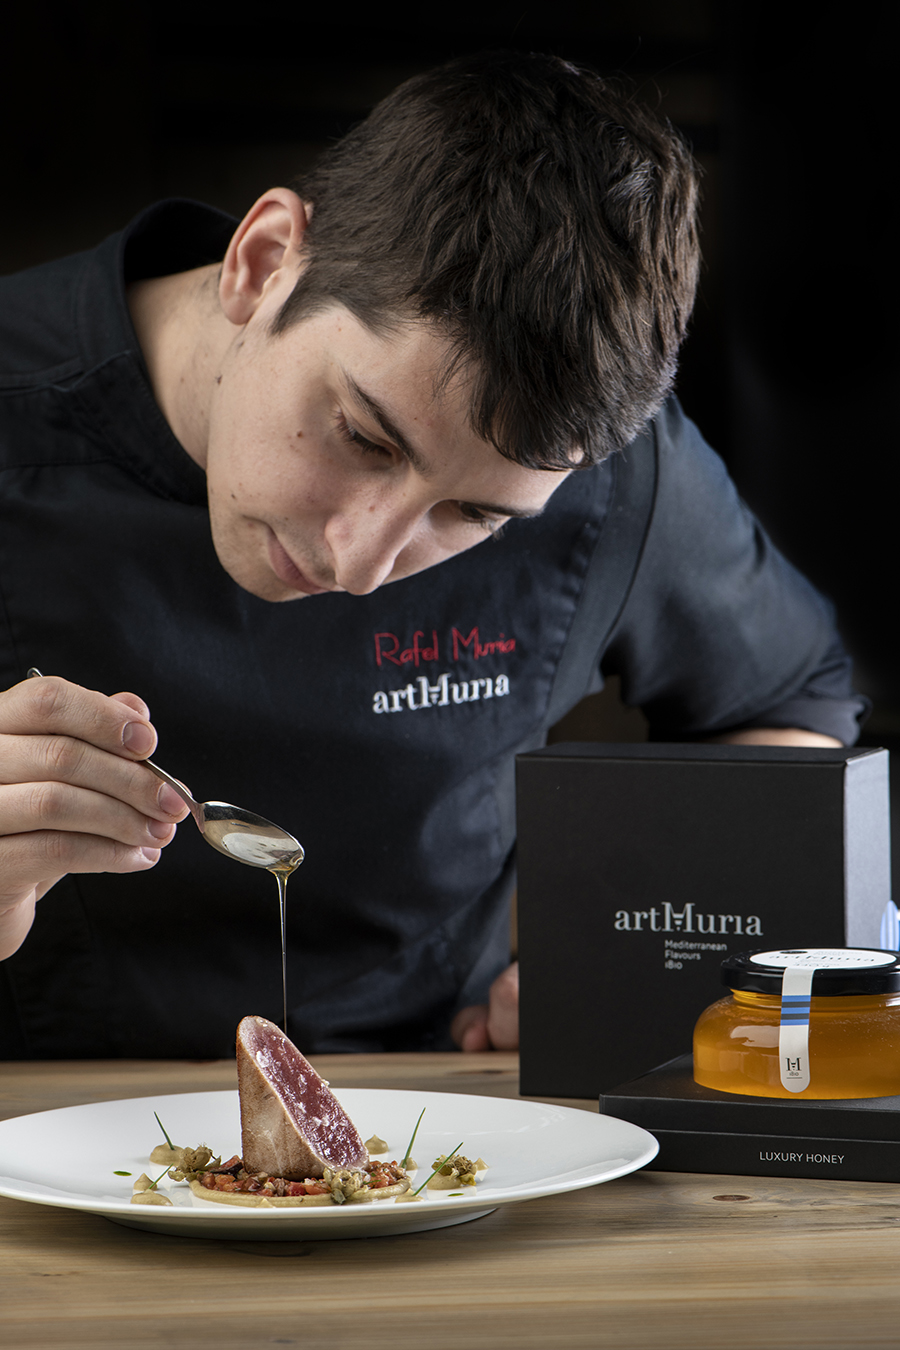 Rafel Muria, Quatre Molins and artMuria chef,  Candidate for the Madrid Fusion Upcoming chef award 2019